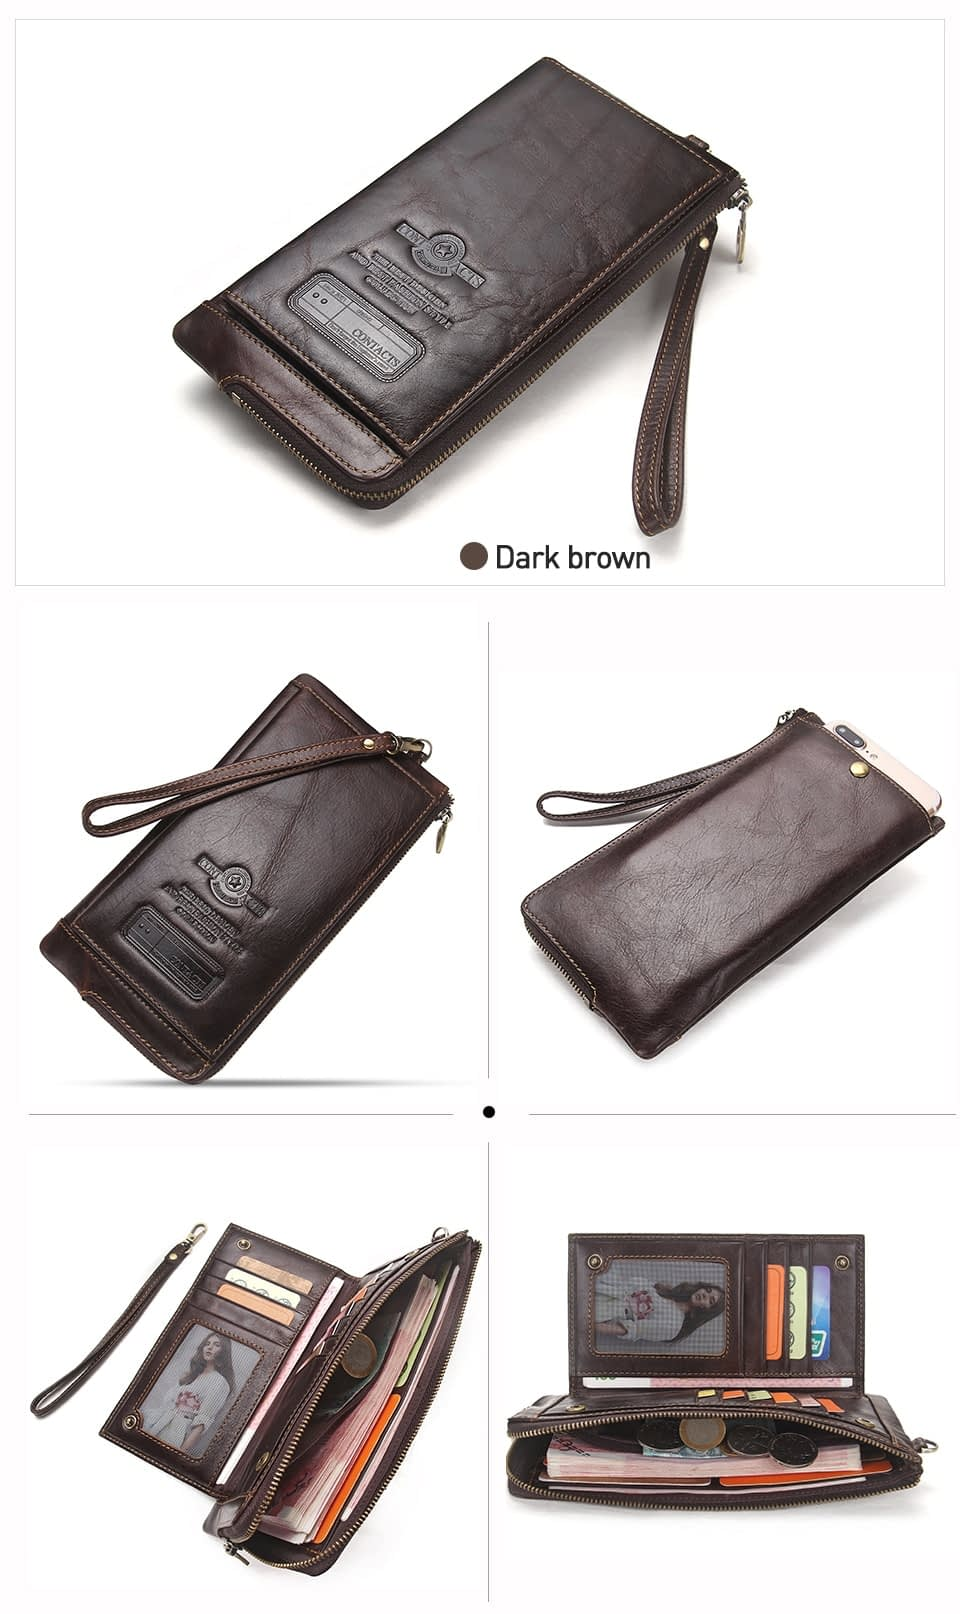 2020 Men Wallet Clutch Genuine Leather Brand Rfid Wallet Male Organizer Cell Phone Clutch Bag Long Coin Purse Free Engrave